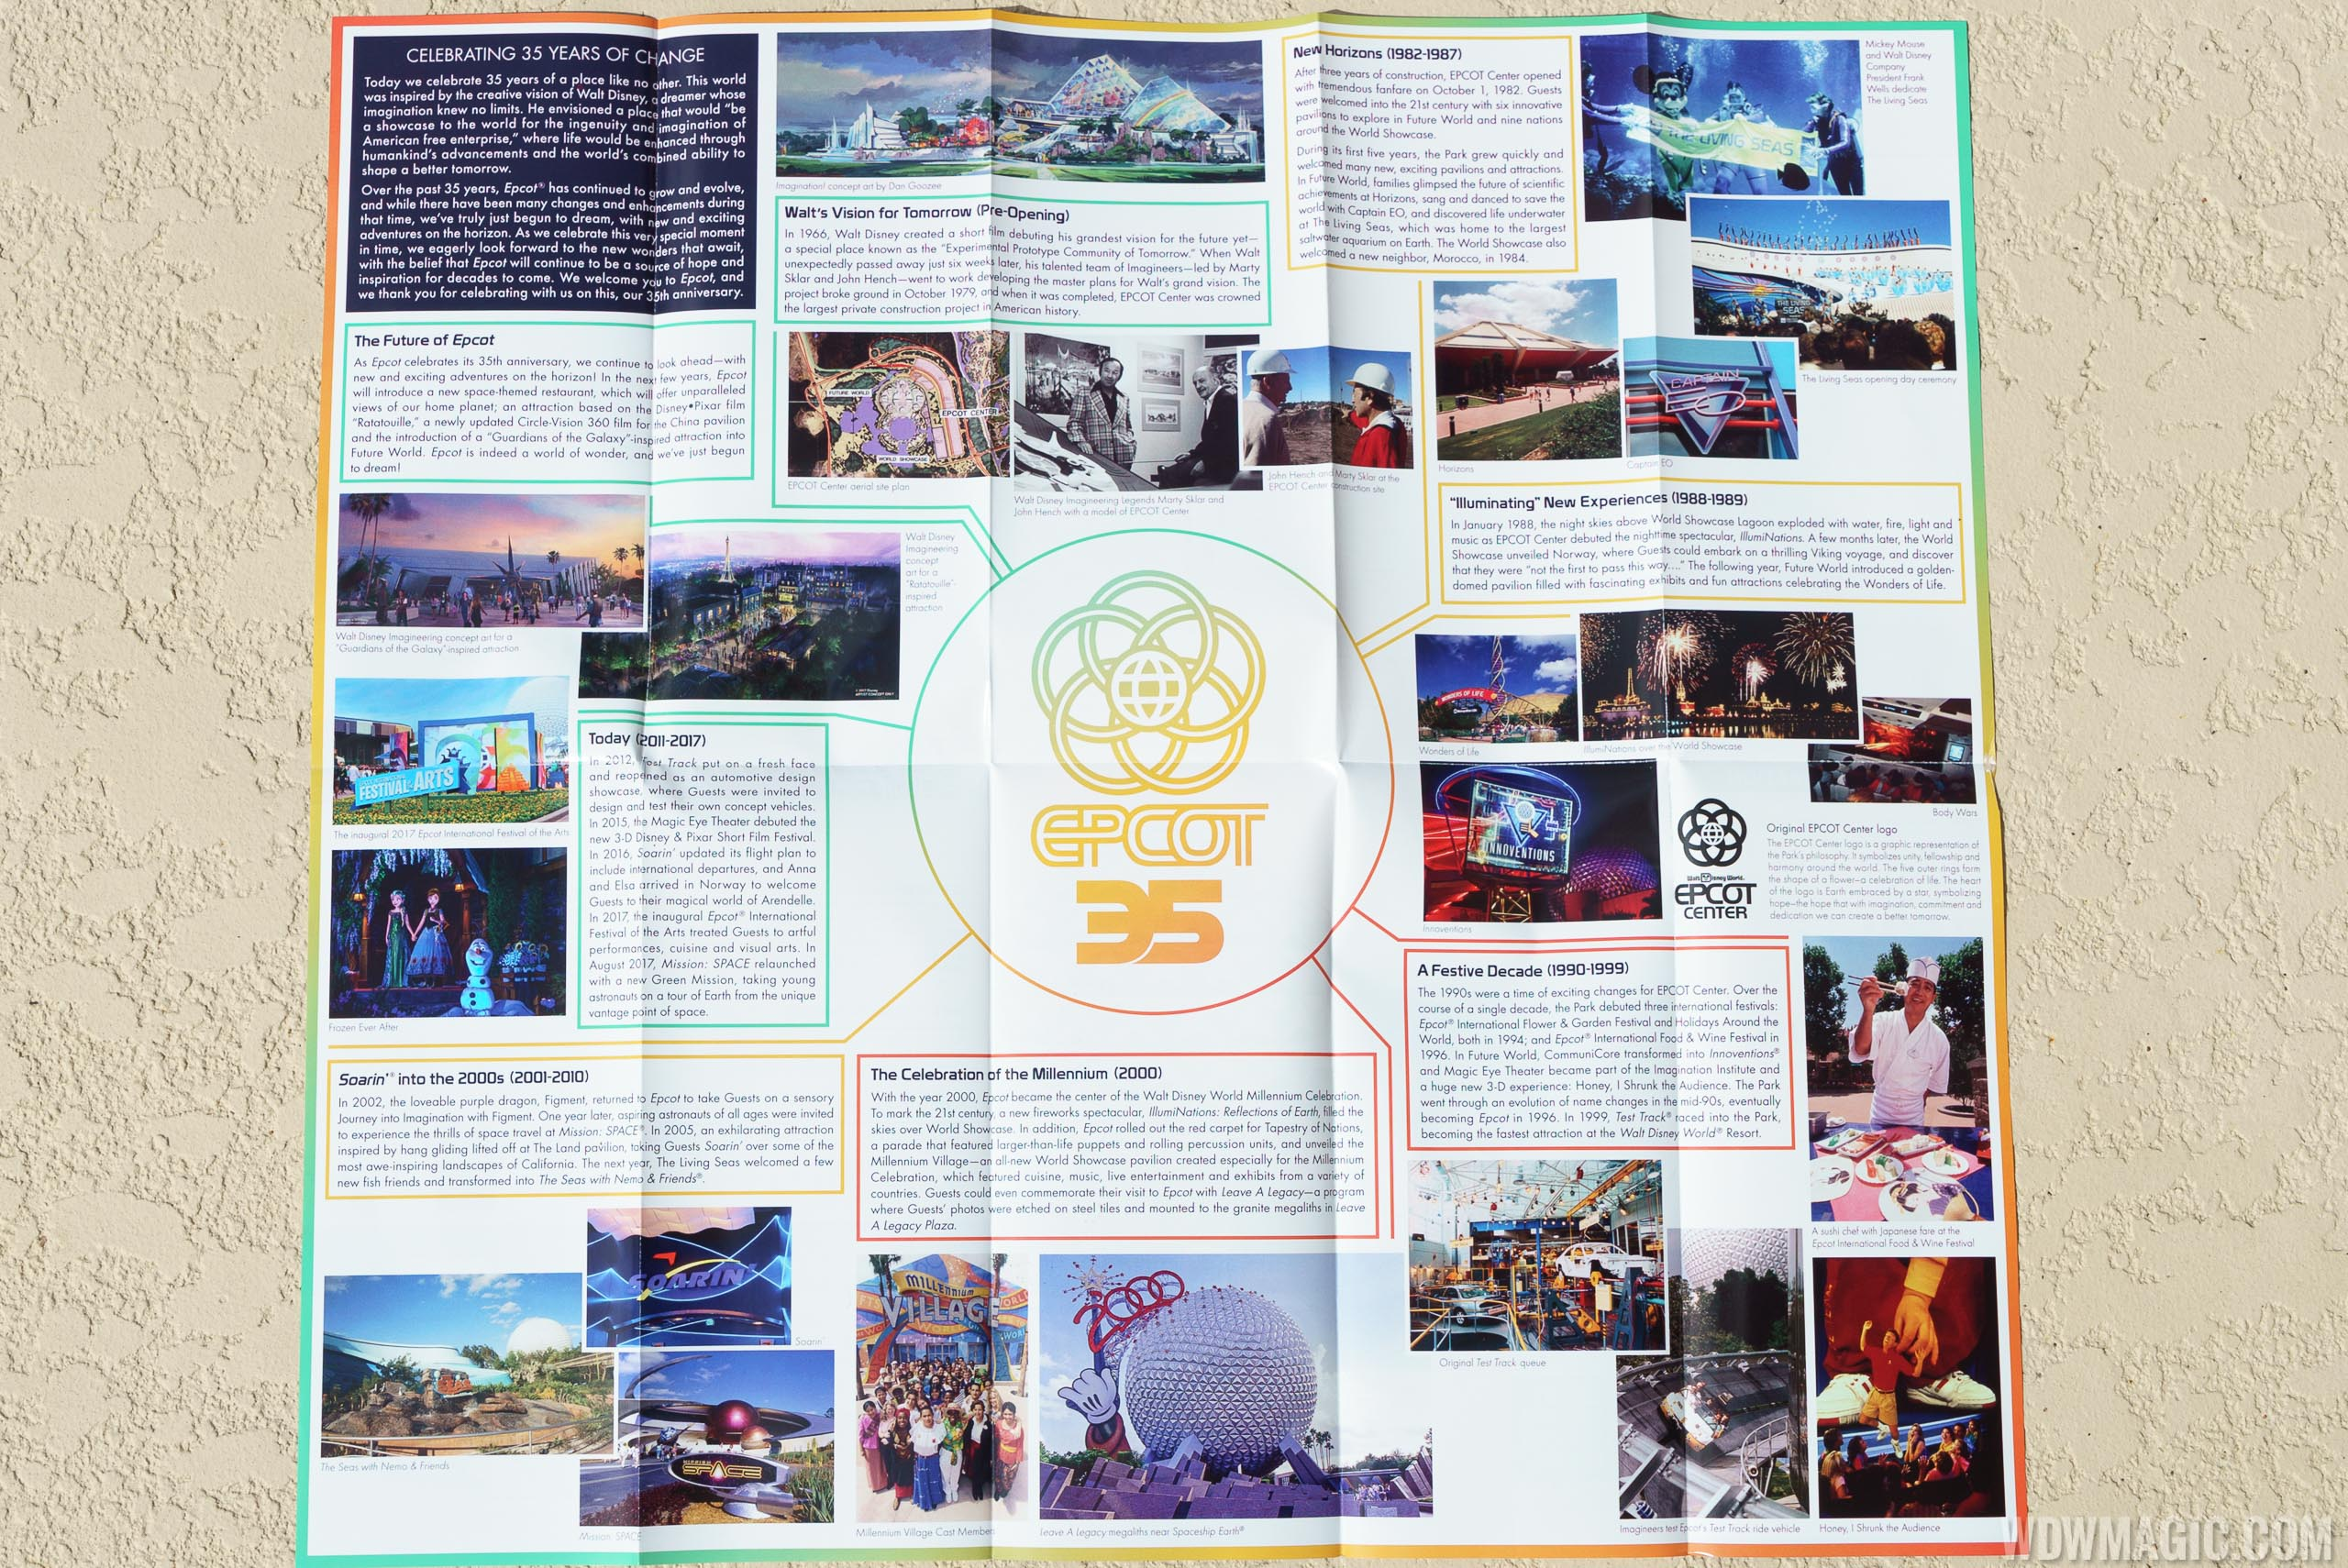 Inside the Epcot 35 Guide Map